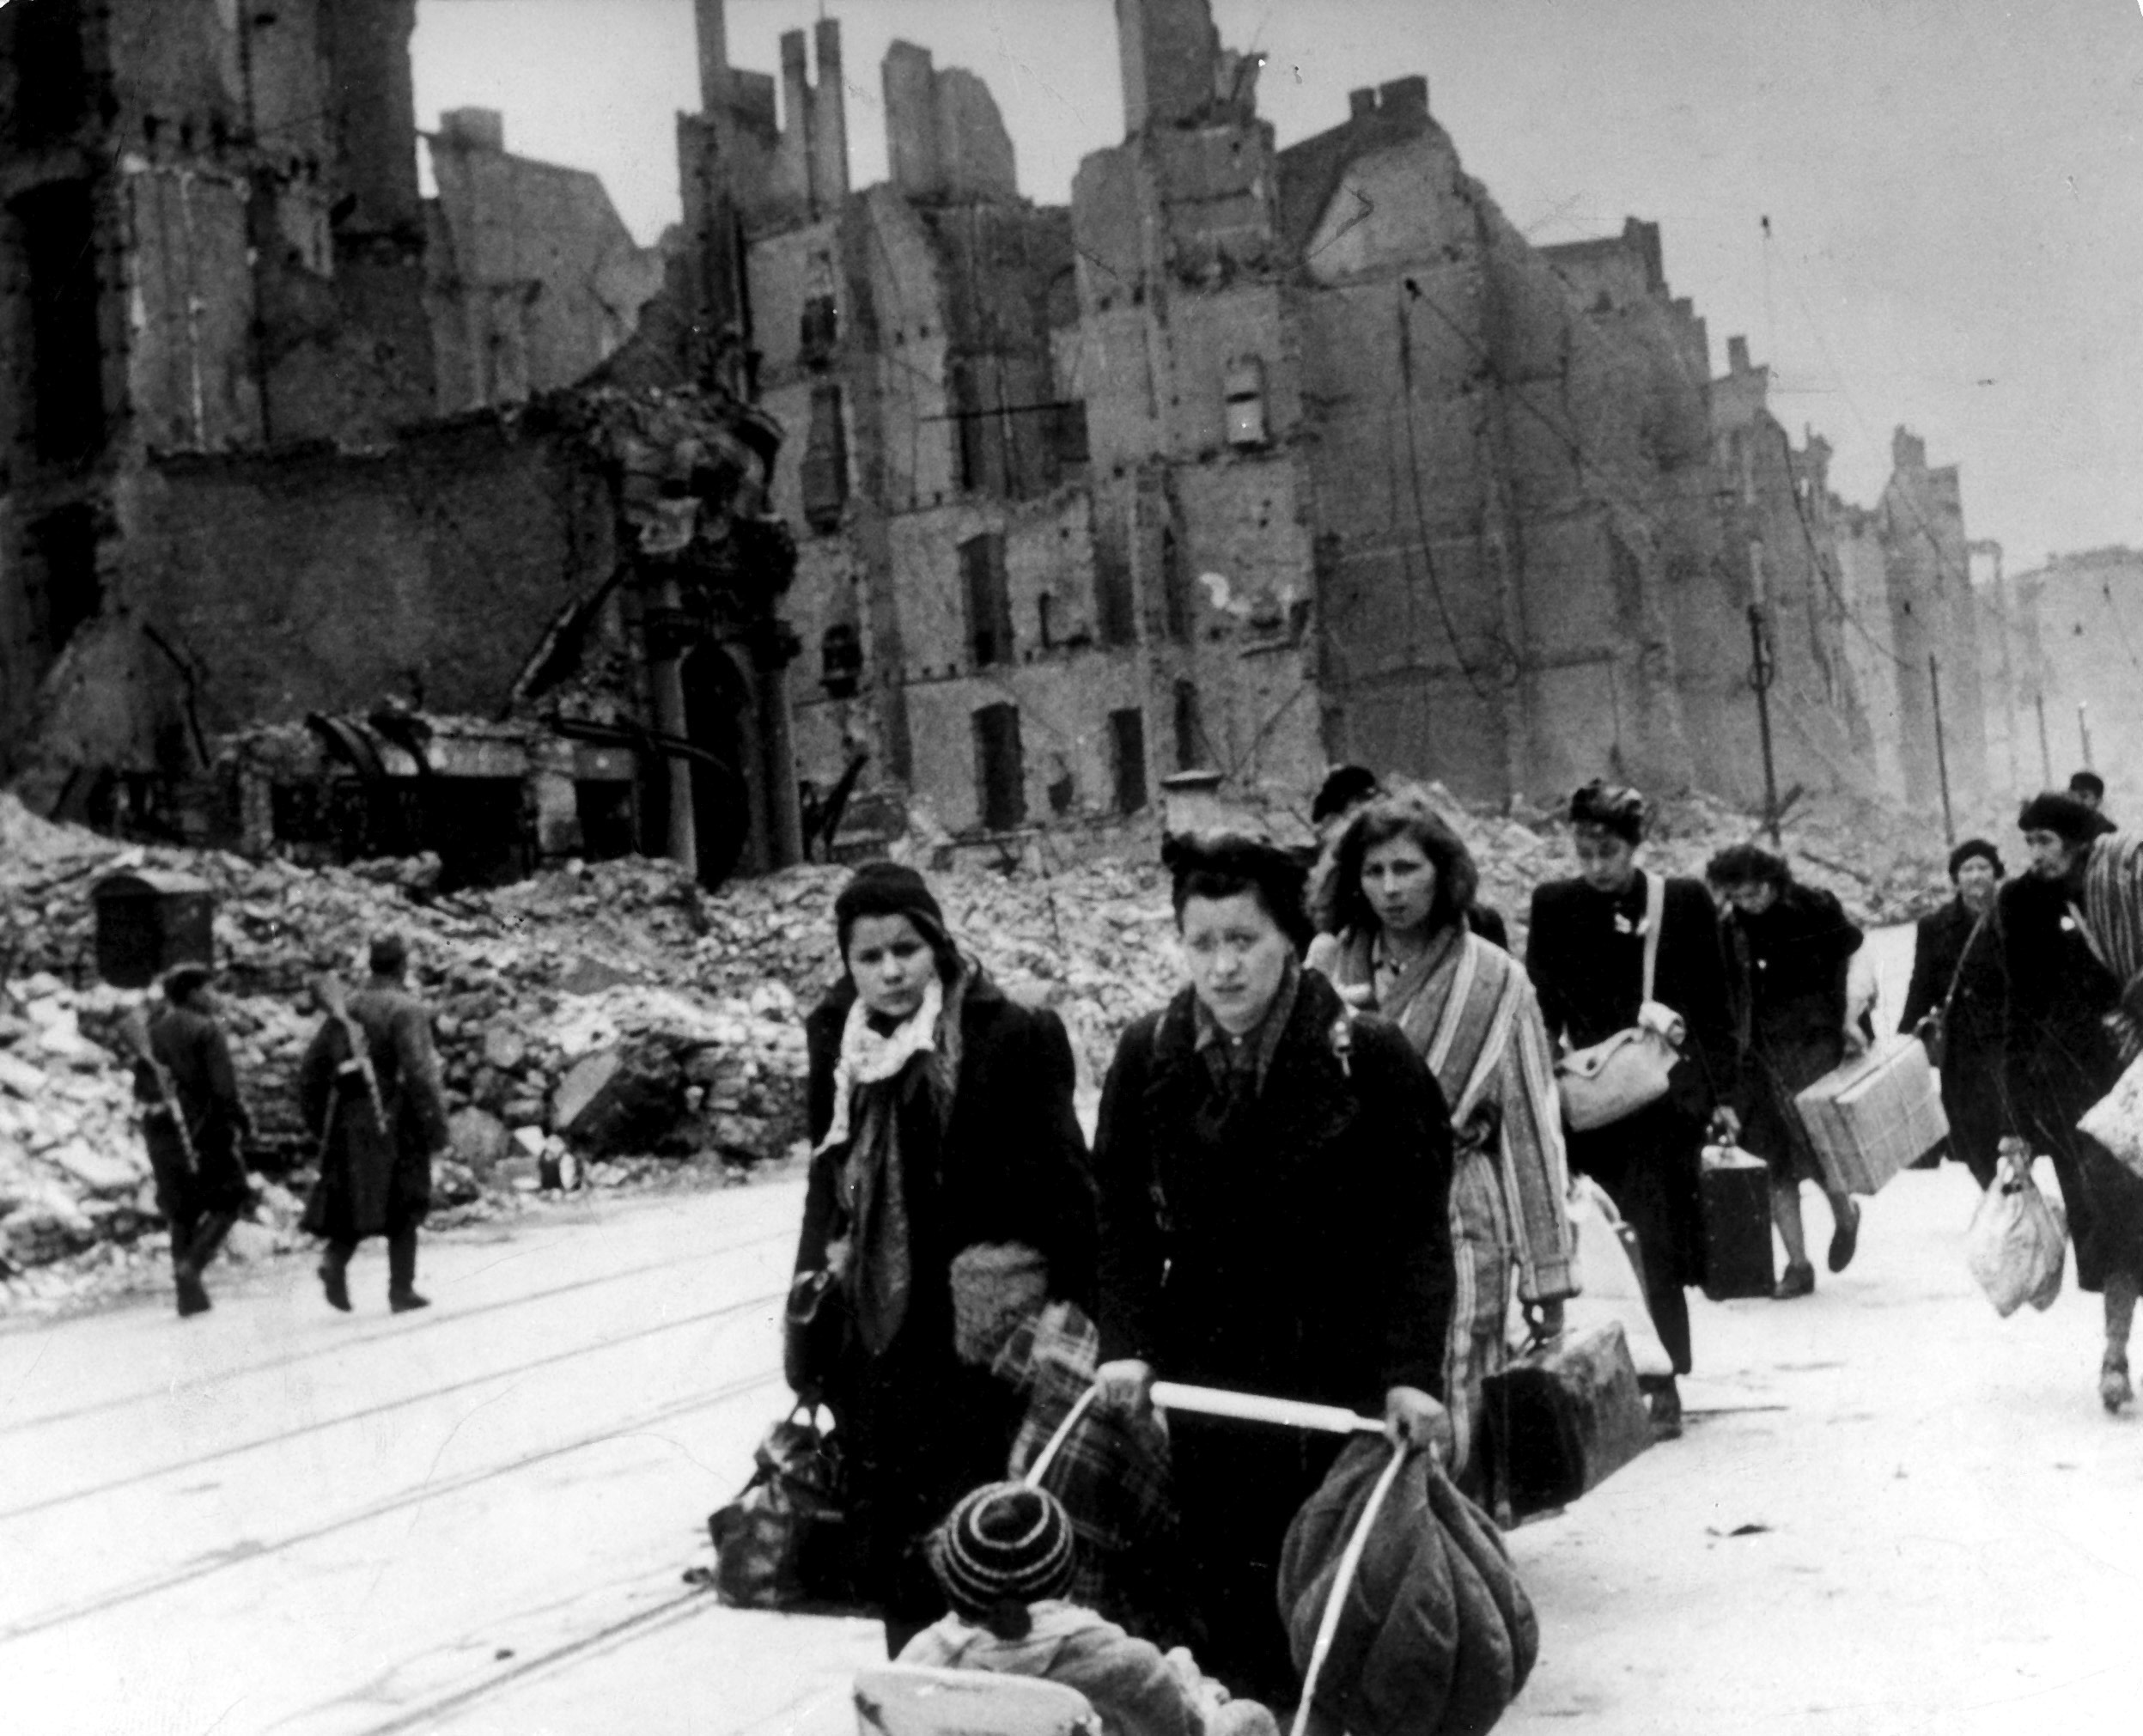 A stream of refugees and people who have been bombed out of their homes moving through destroyed streets in Germany in 1945, after end of war. On the left, two Soviet soldiers can be seen patrolling.